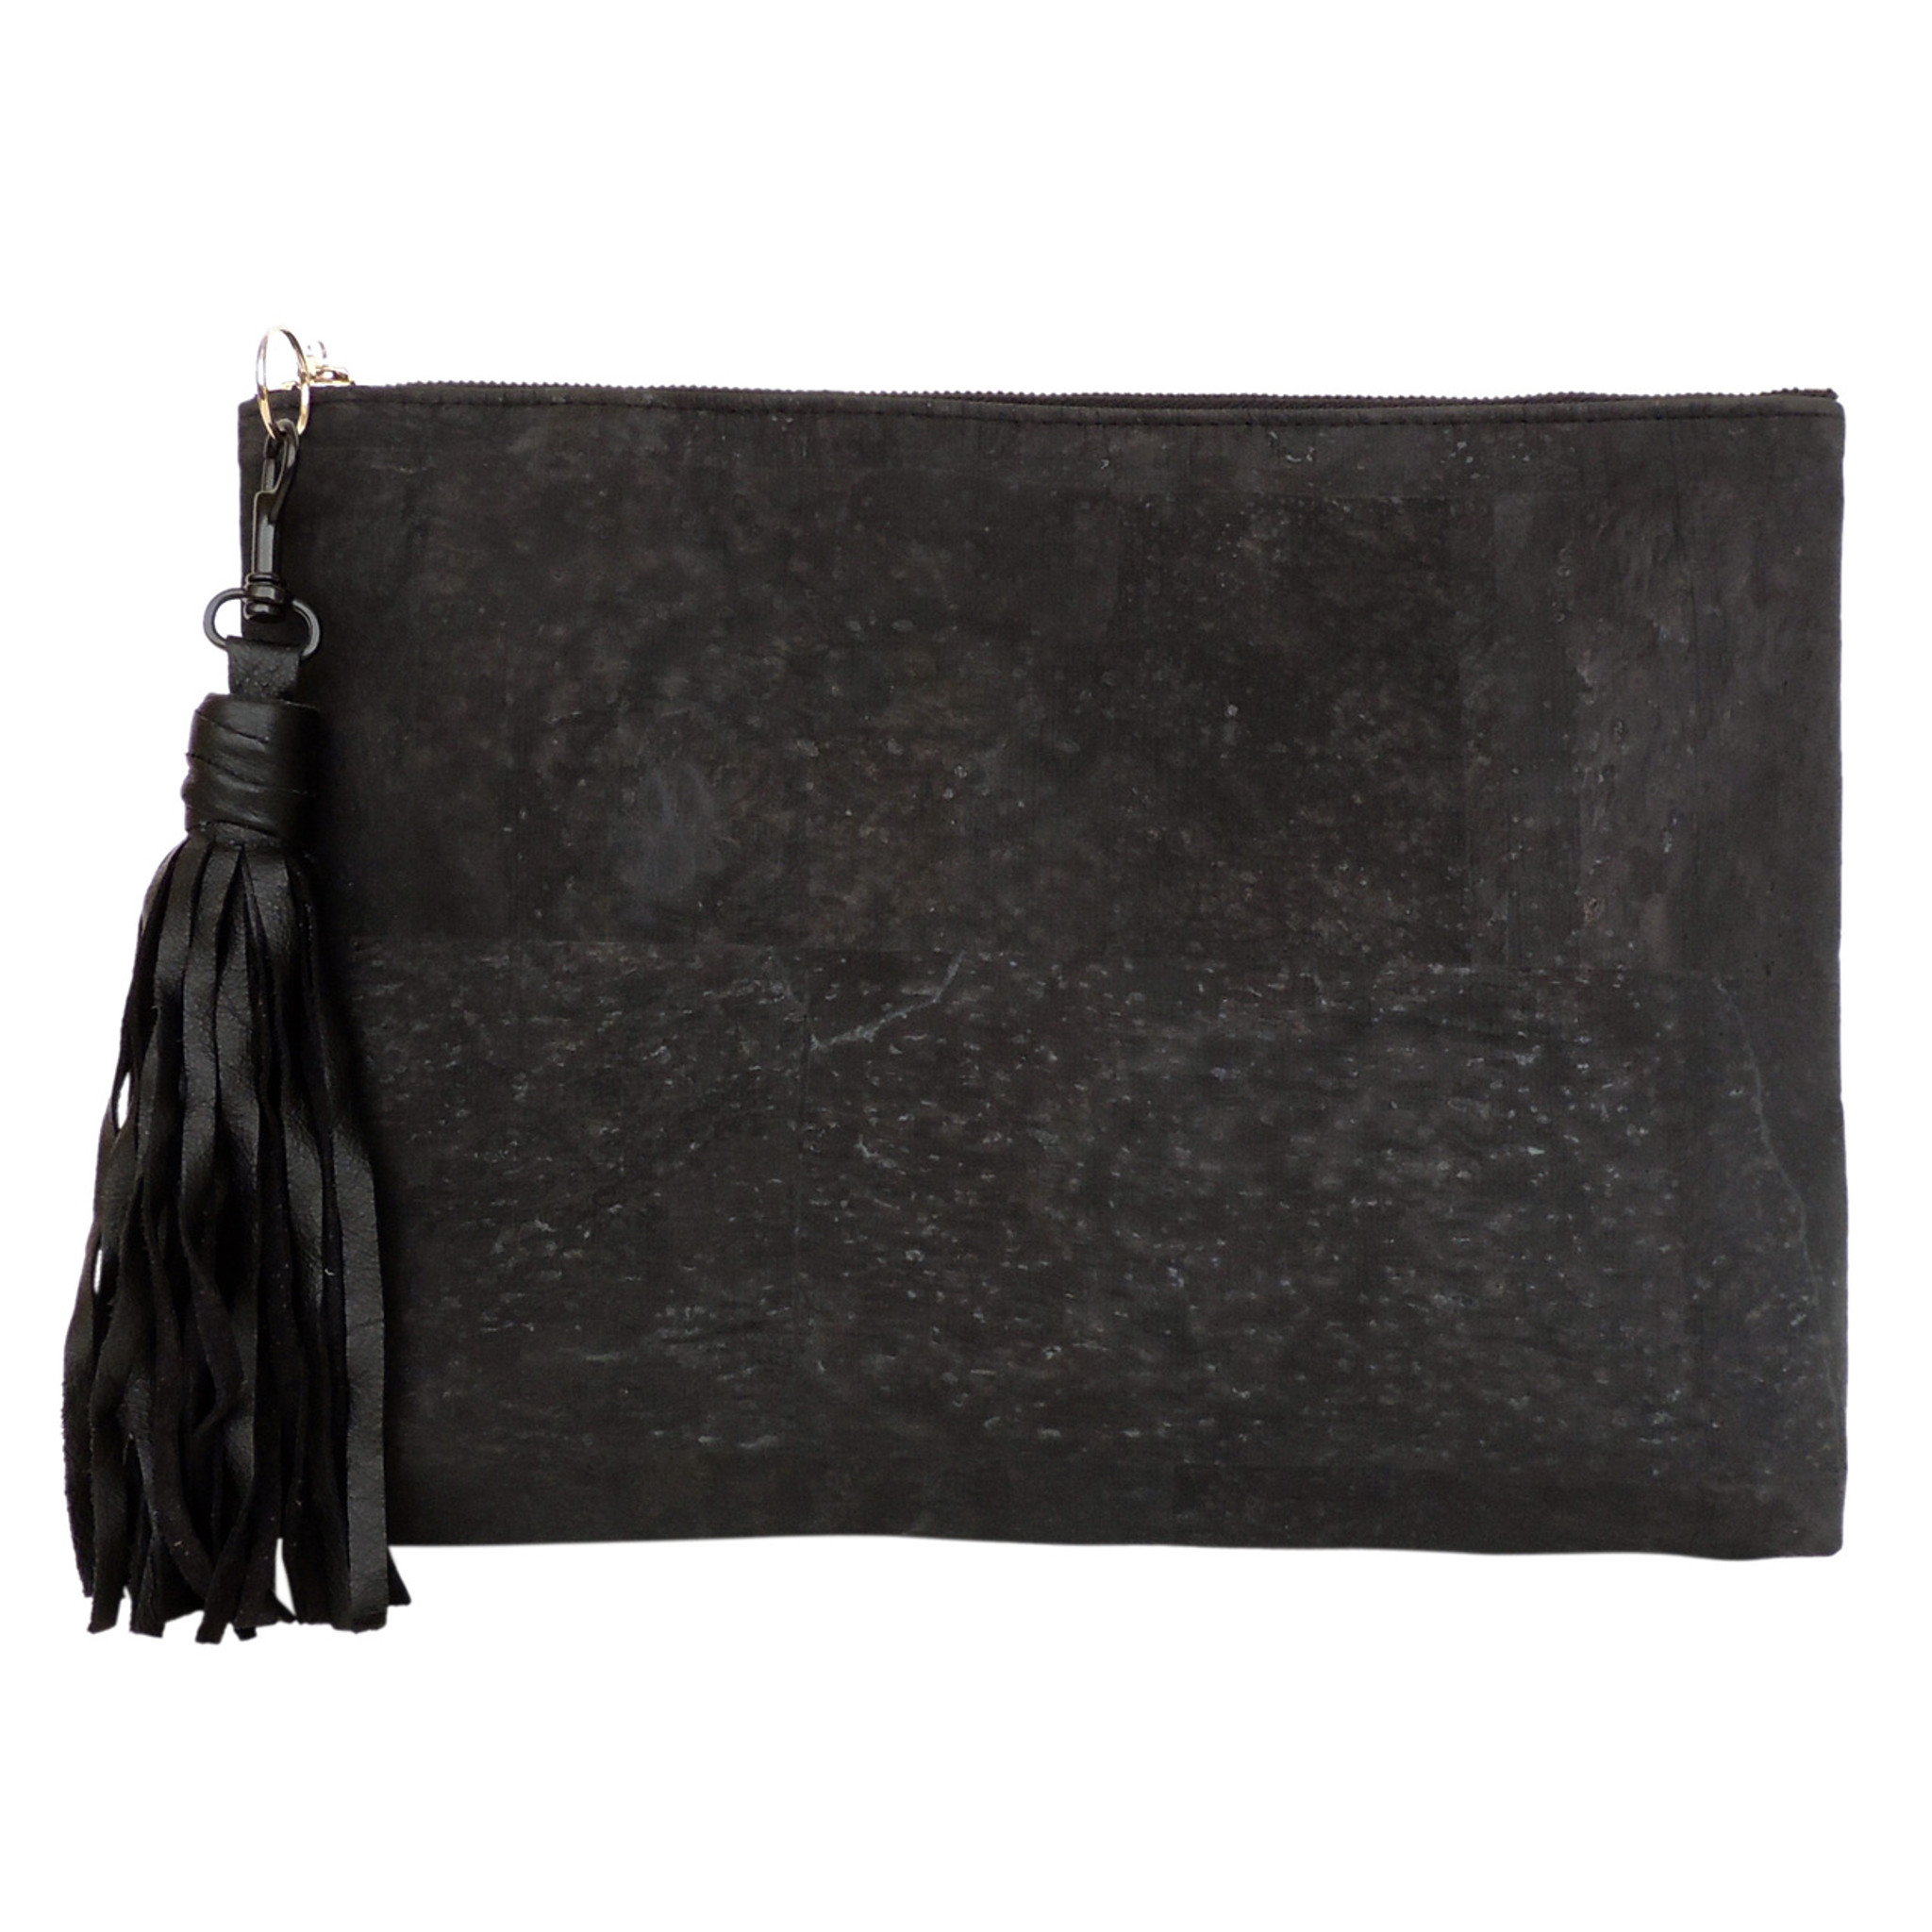 Carryall Clutch in Black Cork, with tassel (sold separately)